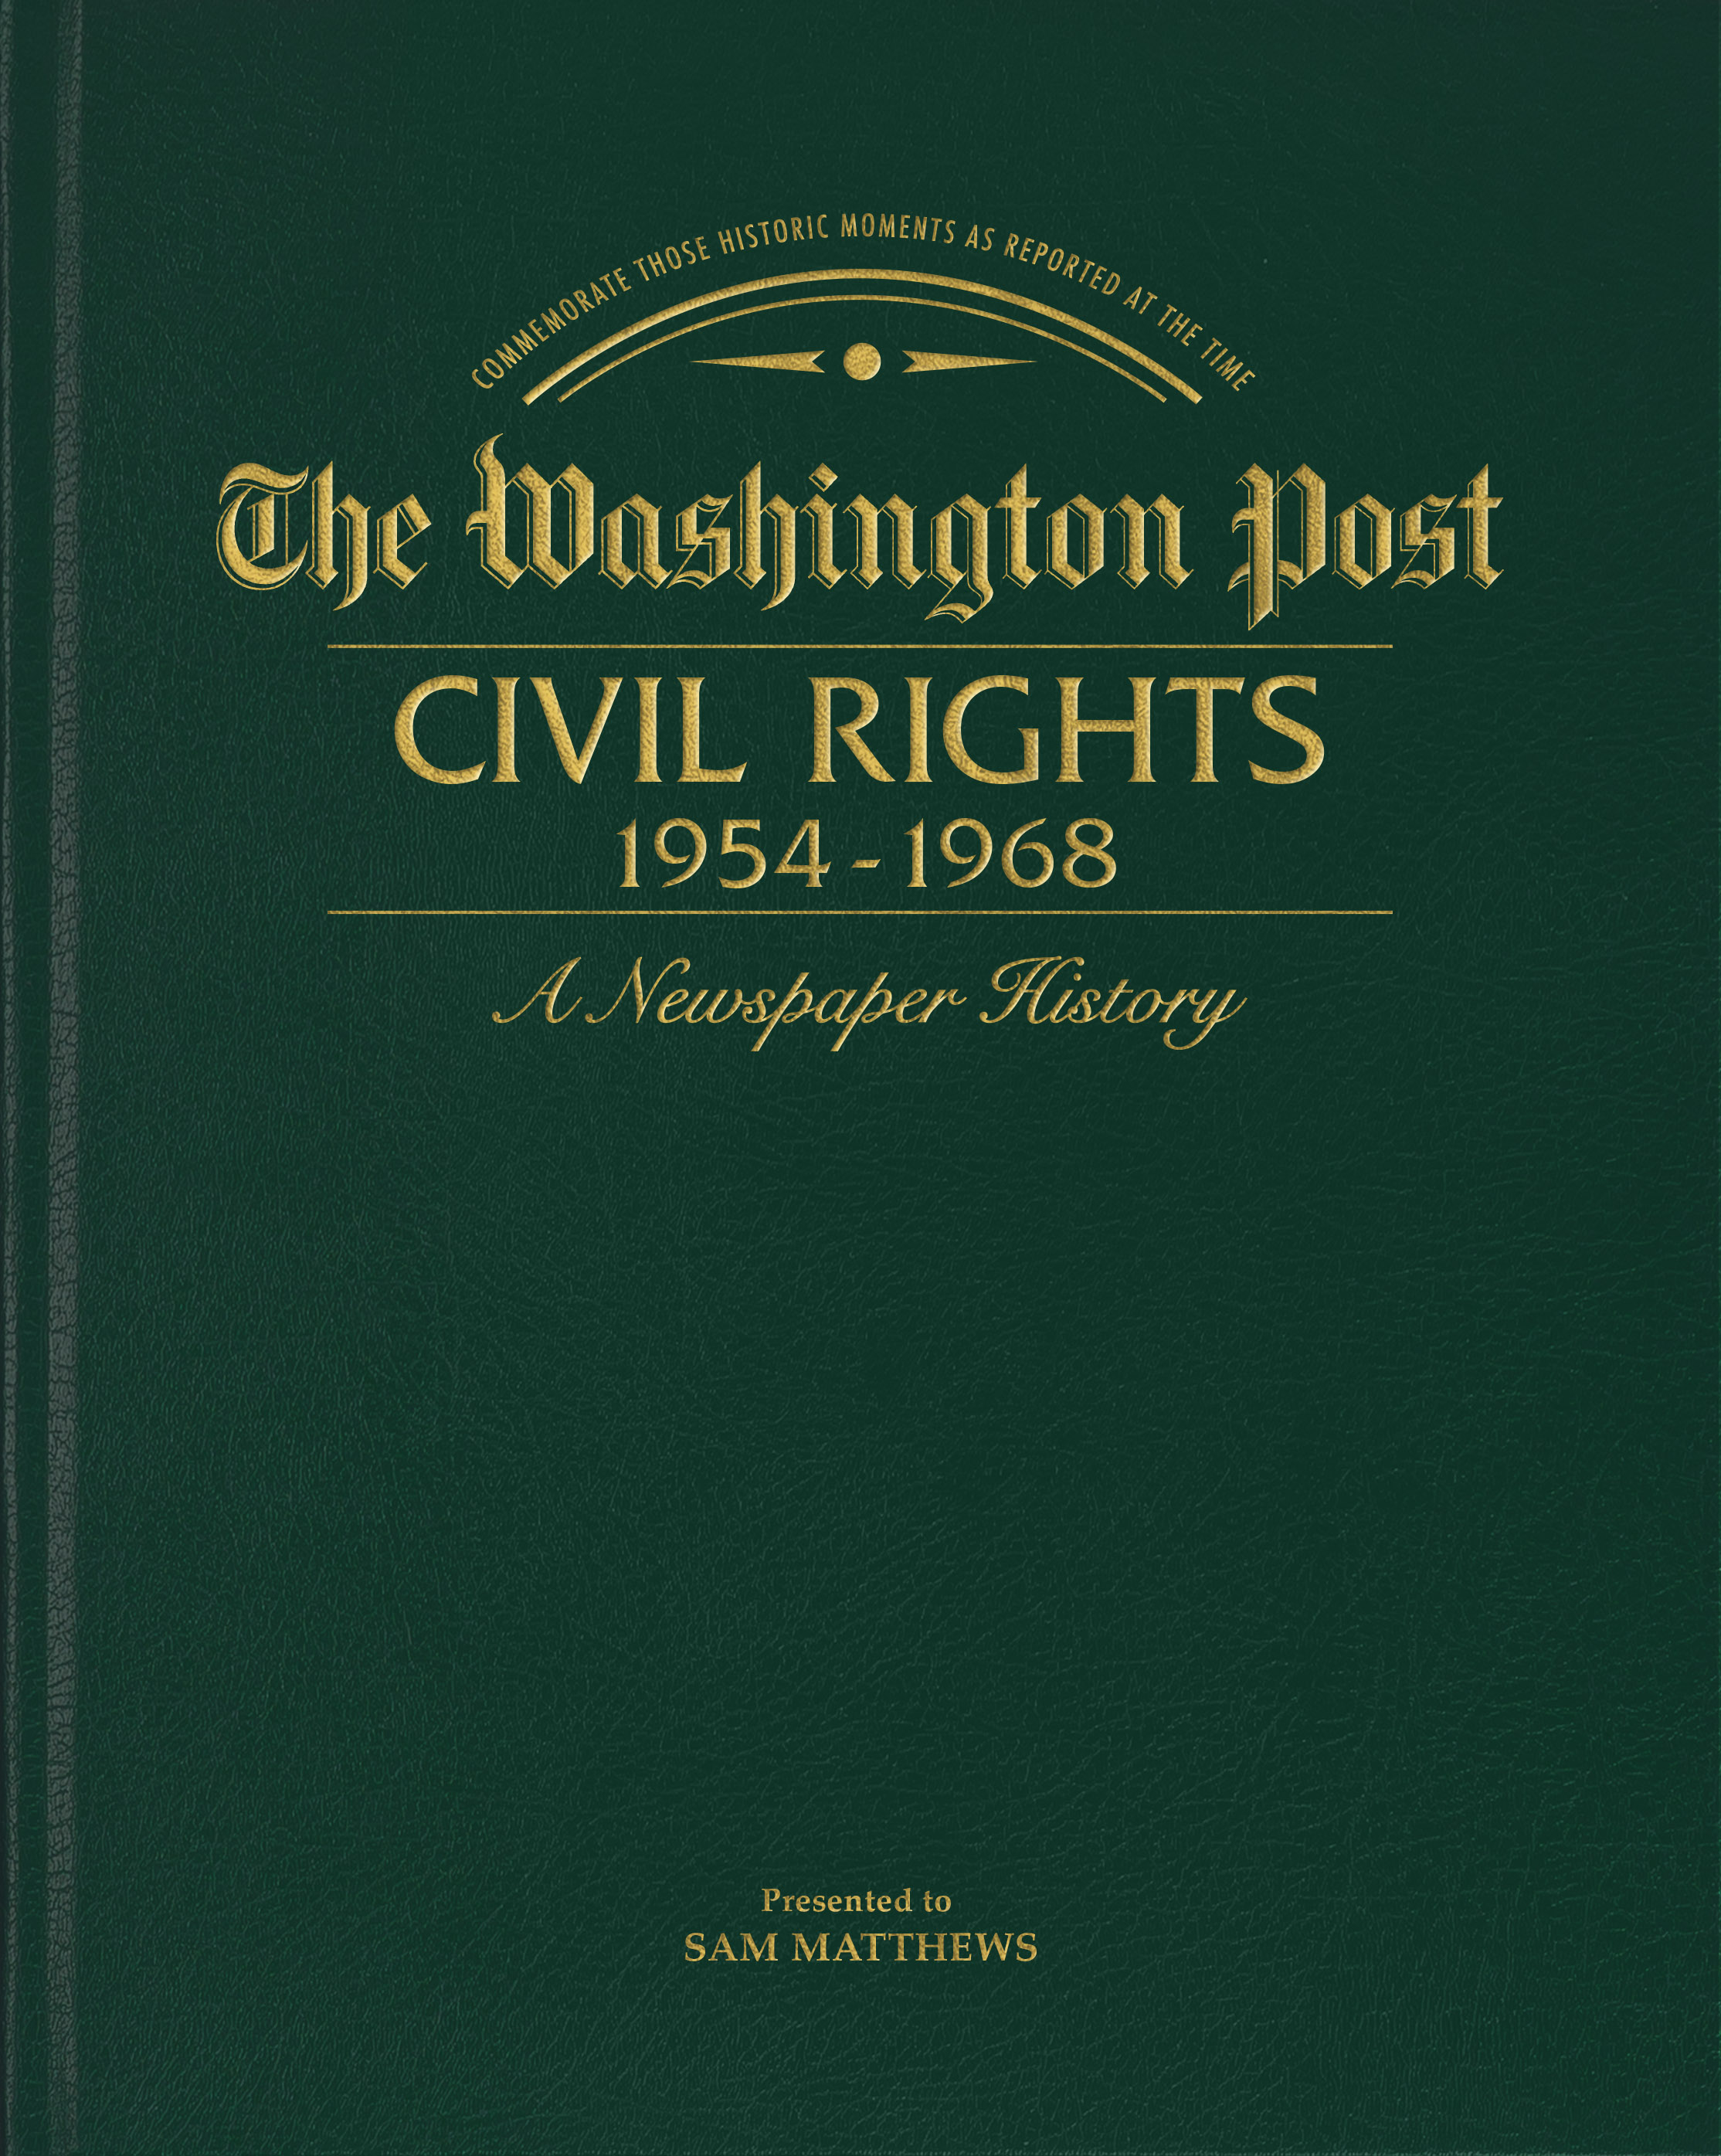 civil rights book